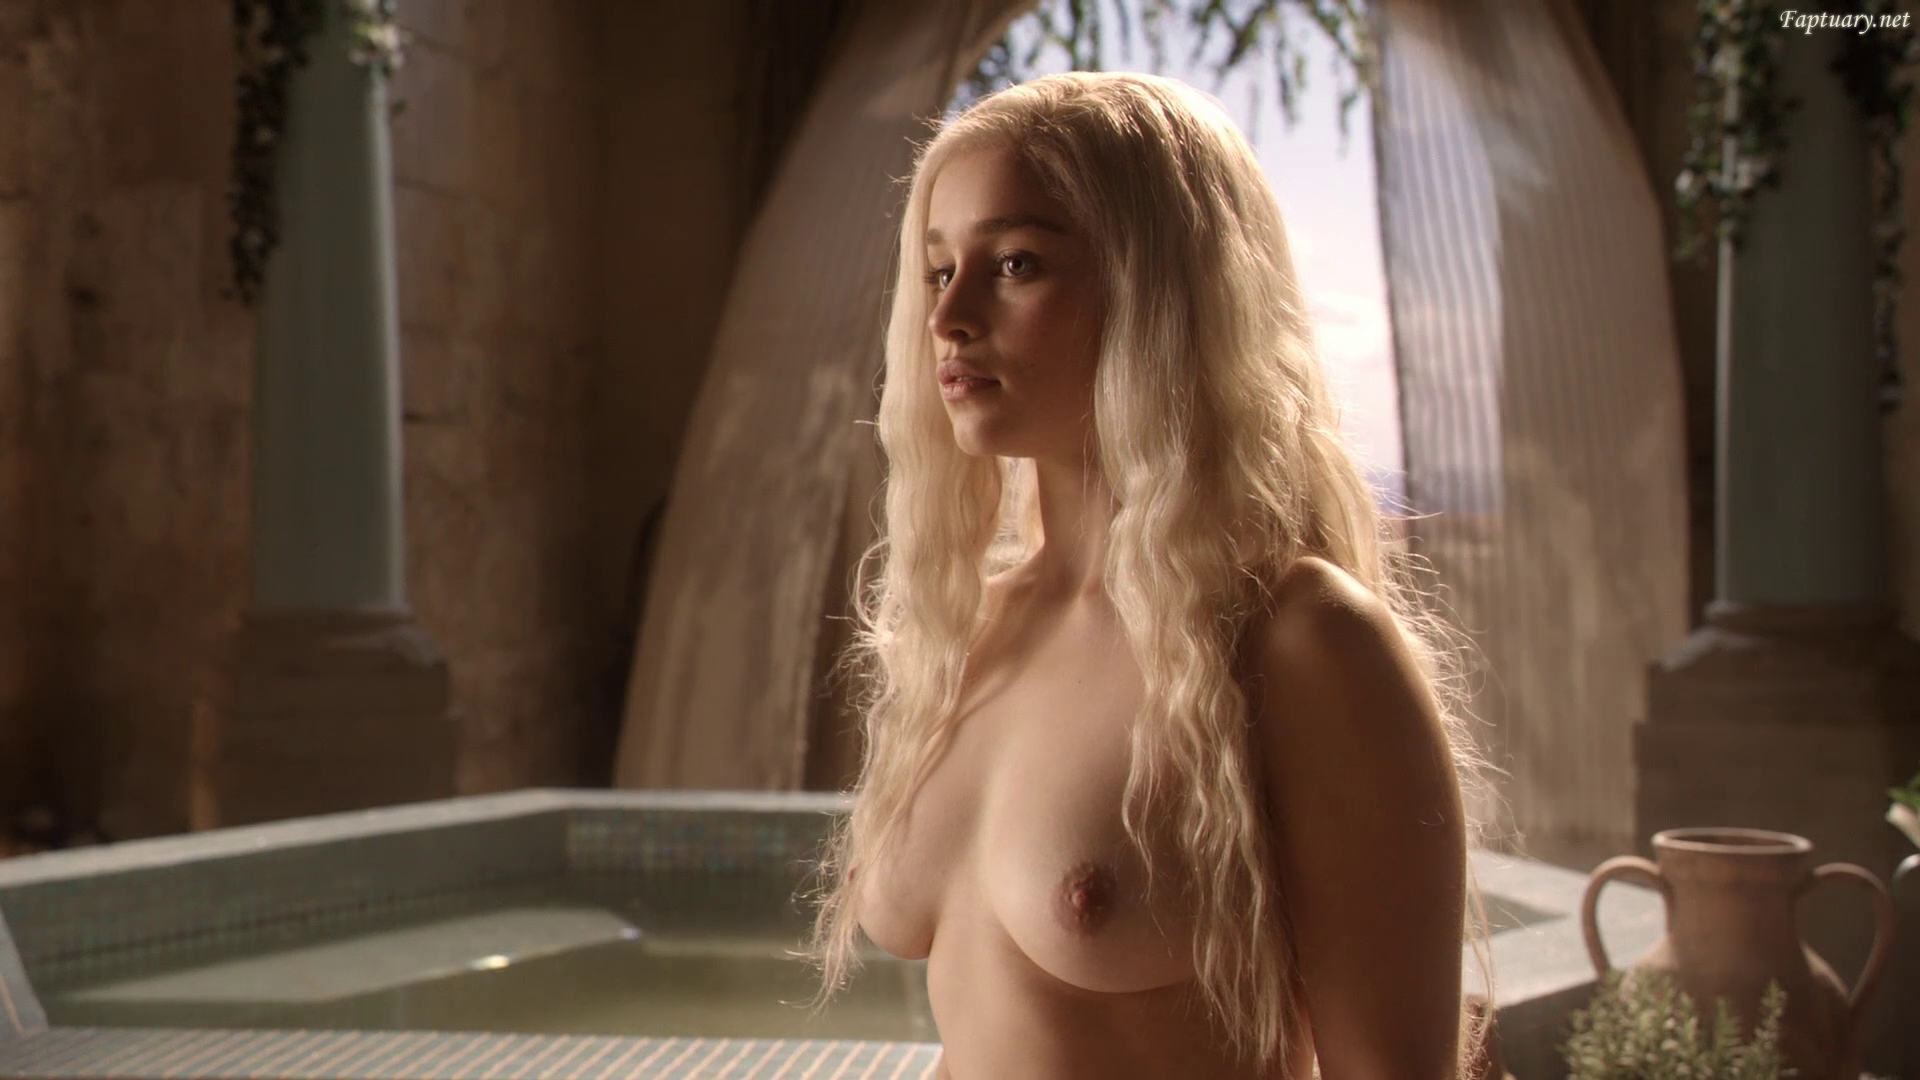 Emilia Clarke Nude Photos 2